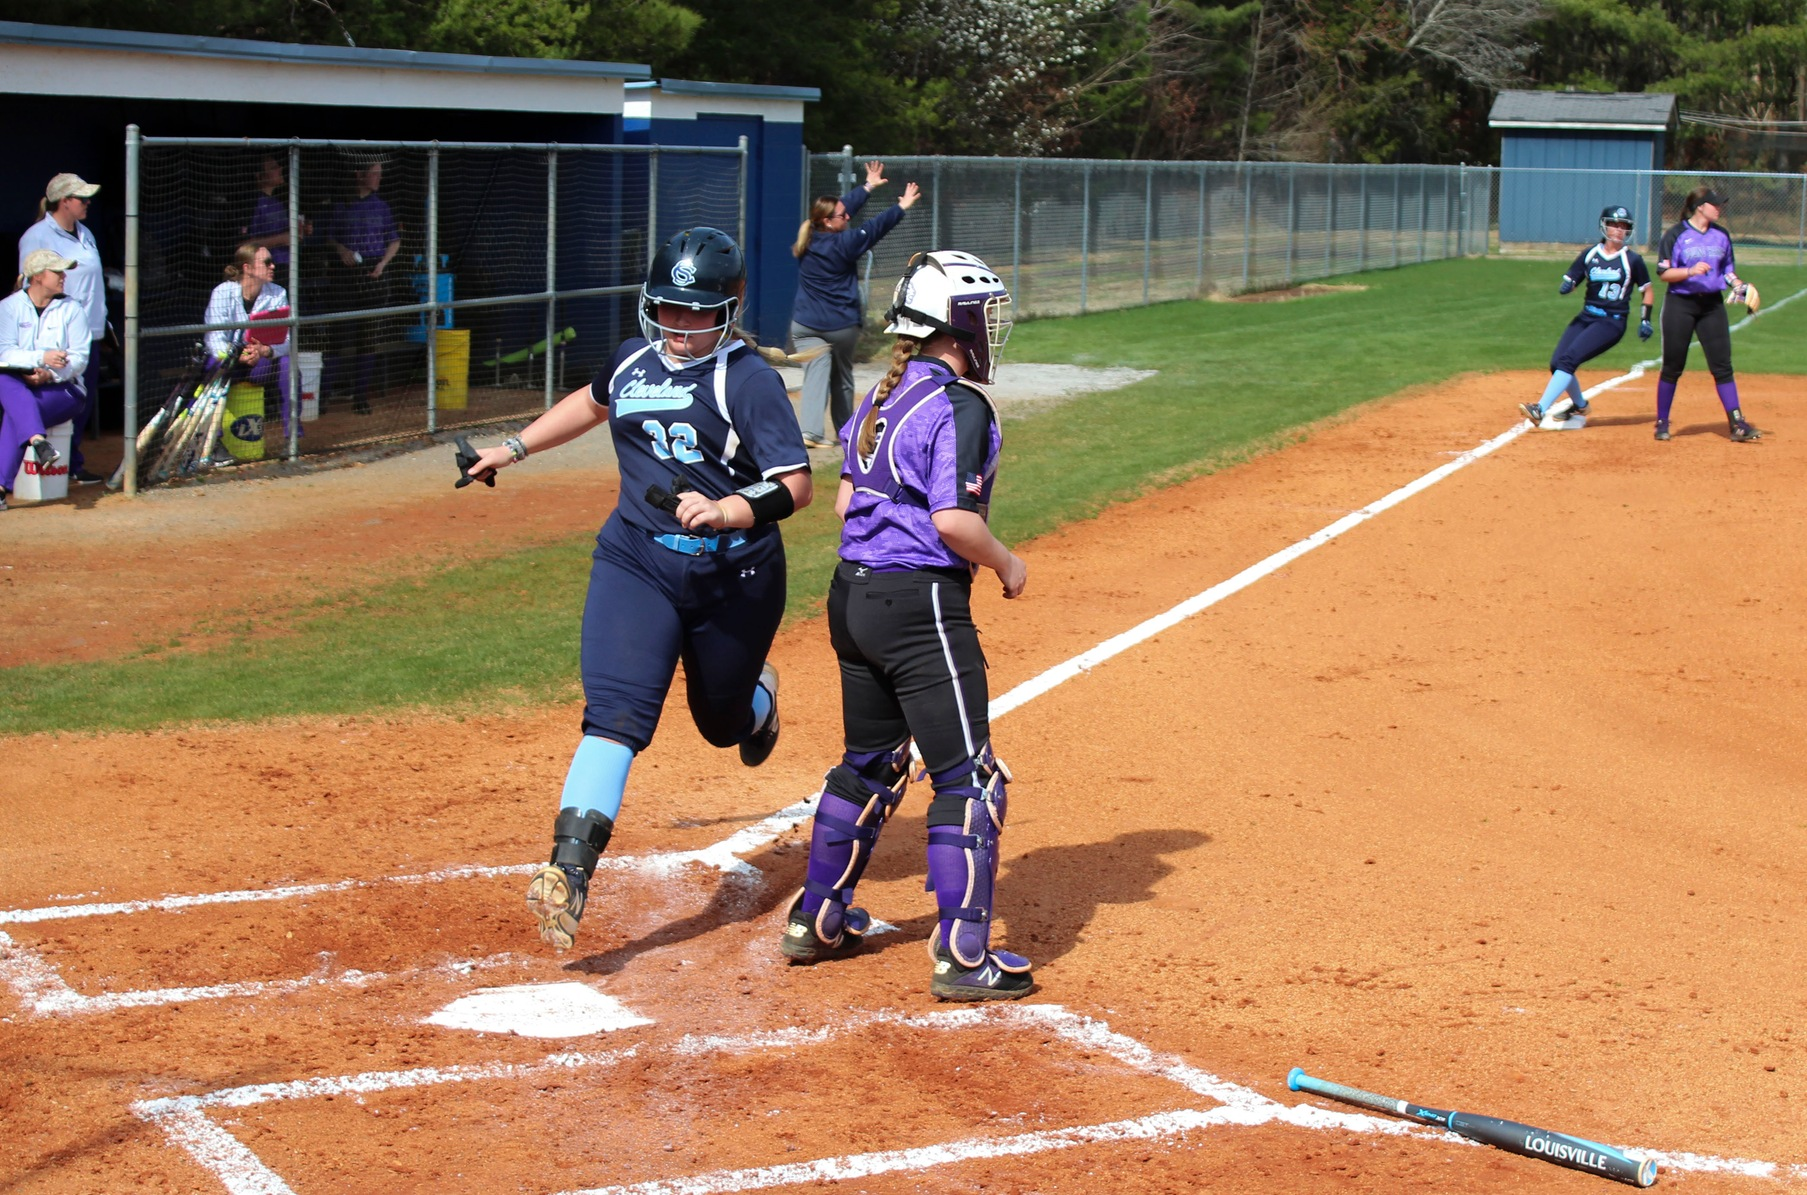 Lady Cougars Split Doubleheader With YHC